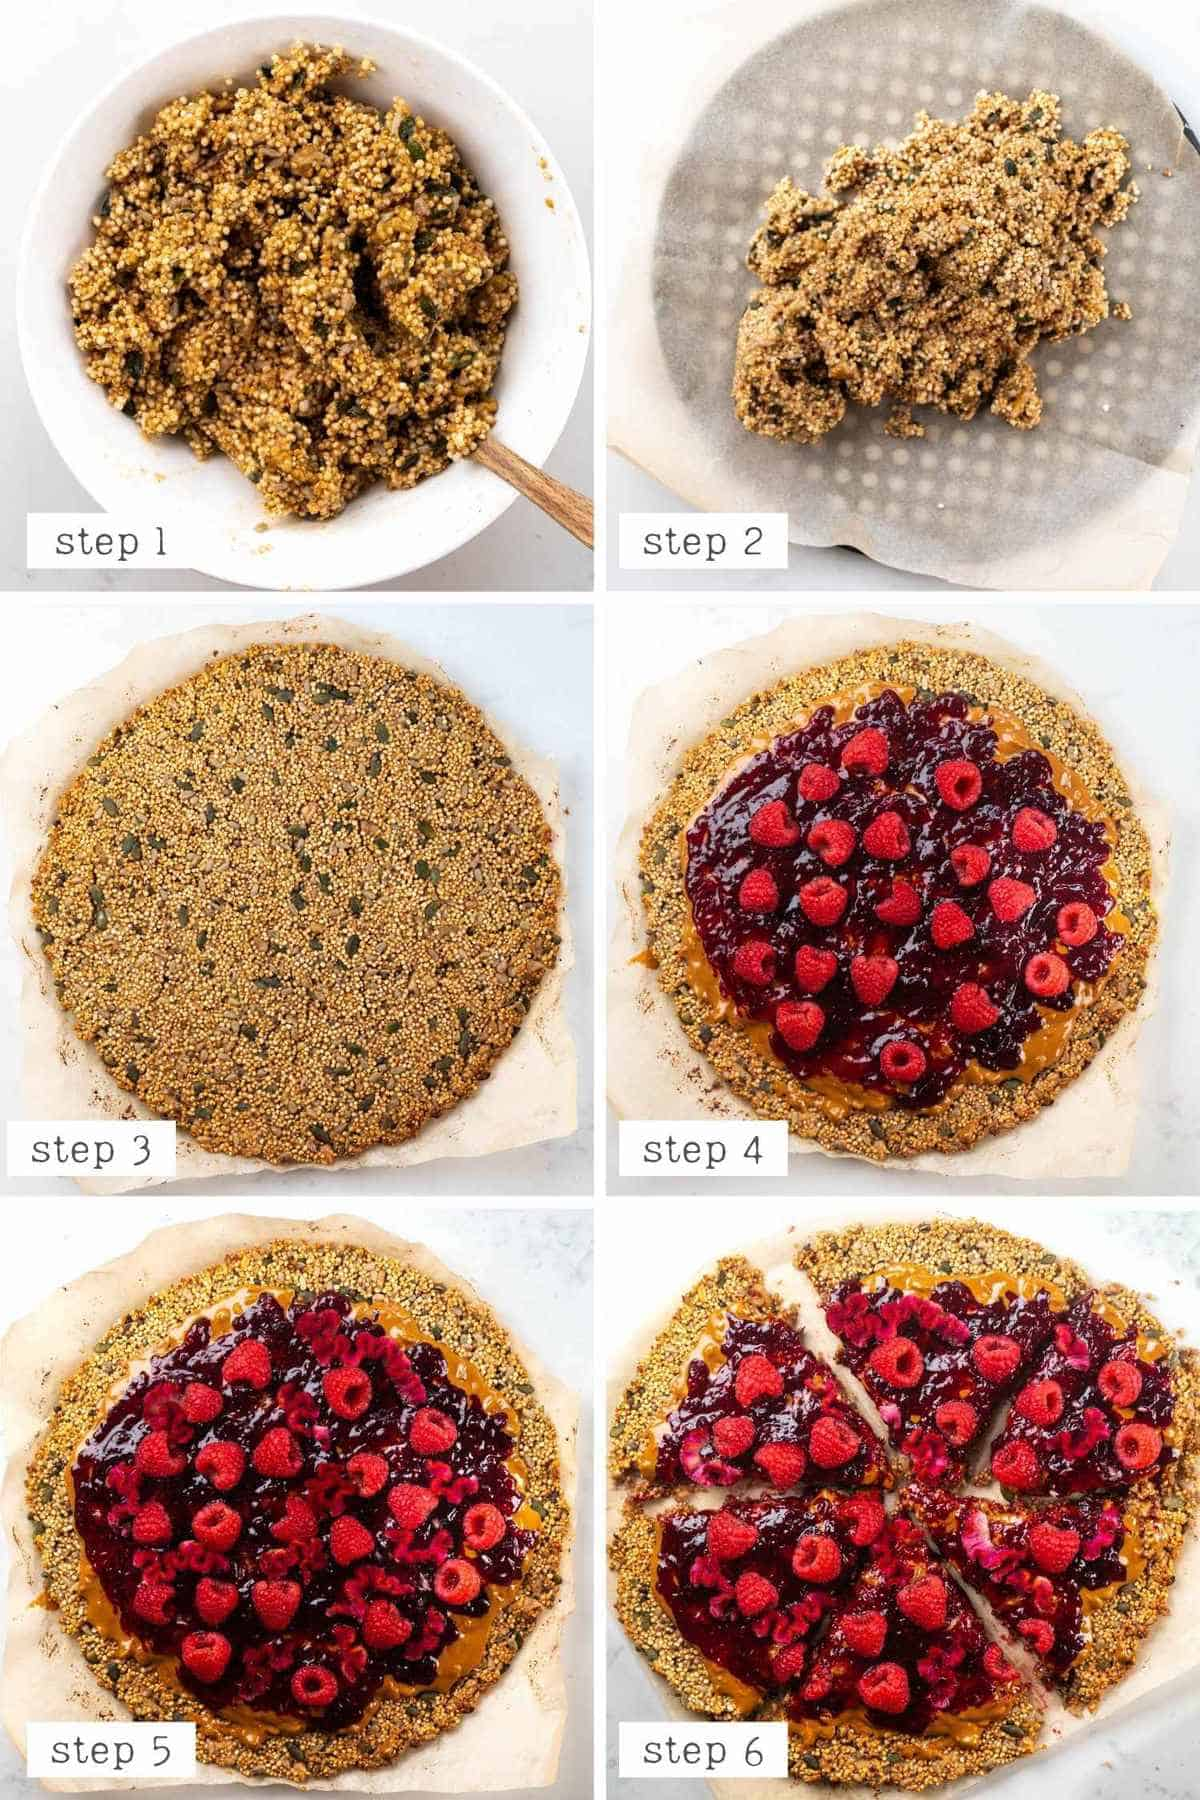 steps for assembling the peanut butter and jam breakfast pizza